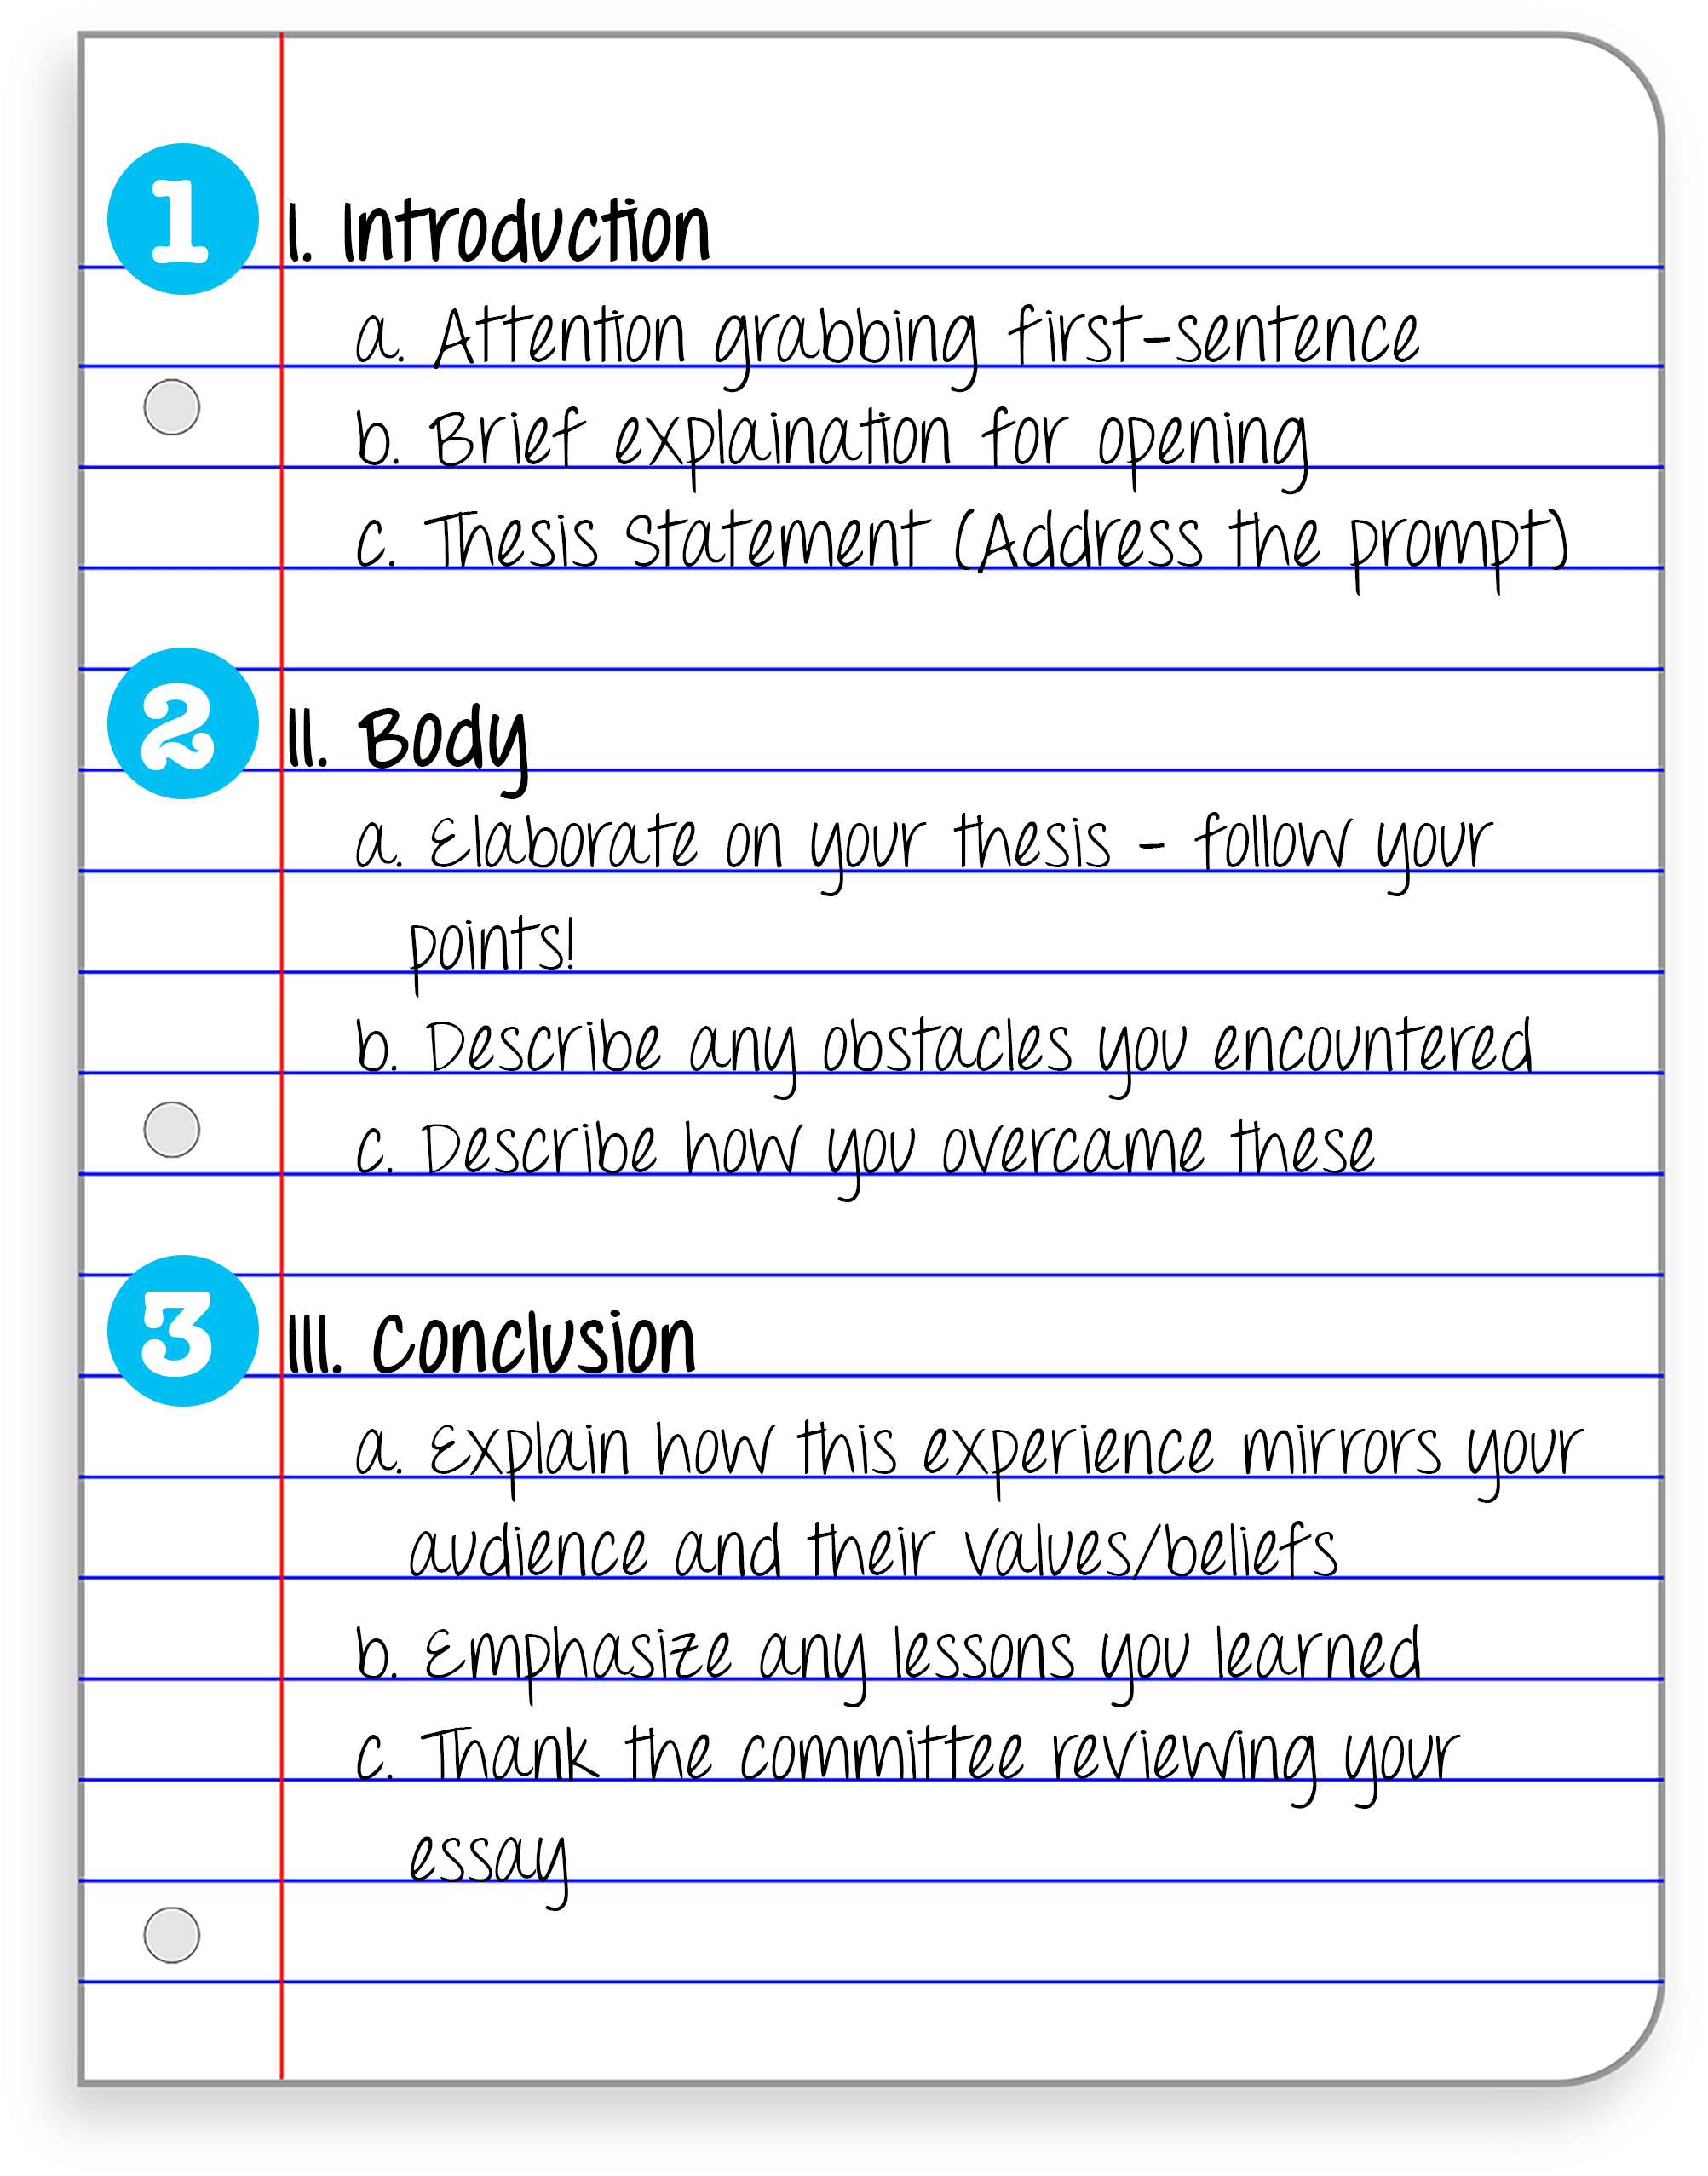 Essay Thesis Statement Examples - Explained With Tips and Types